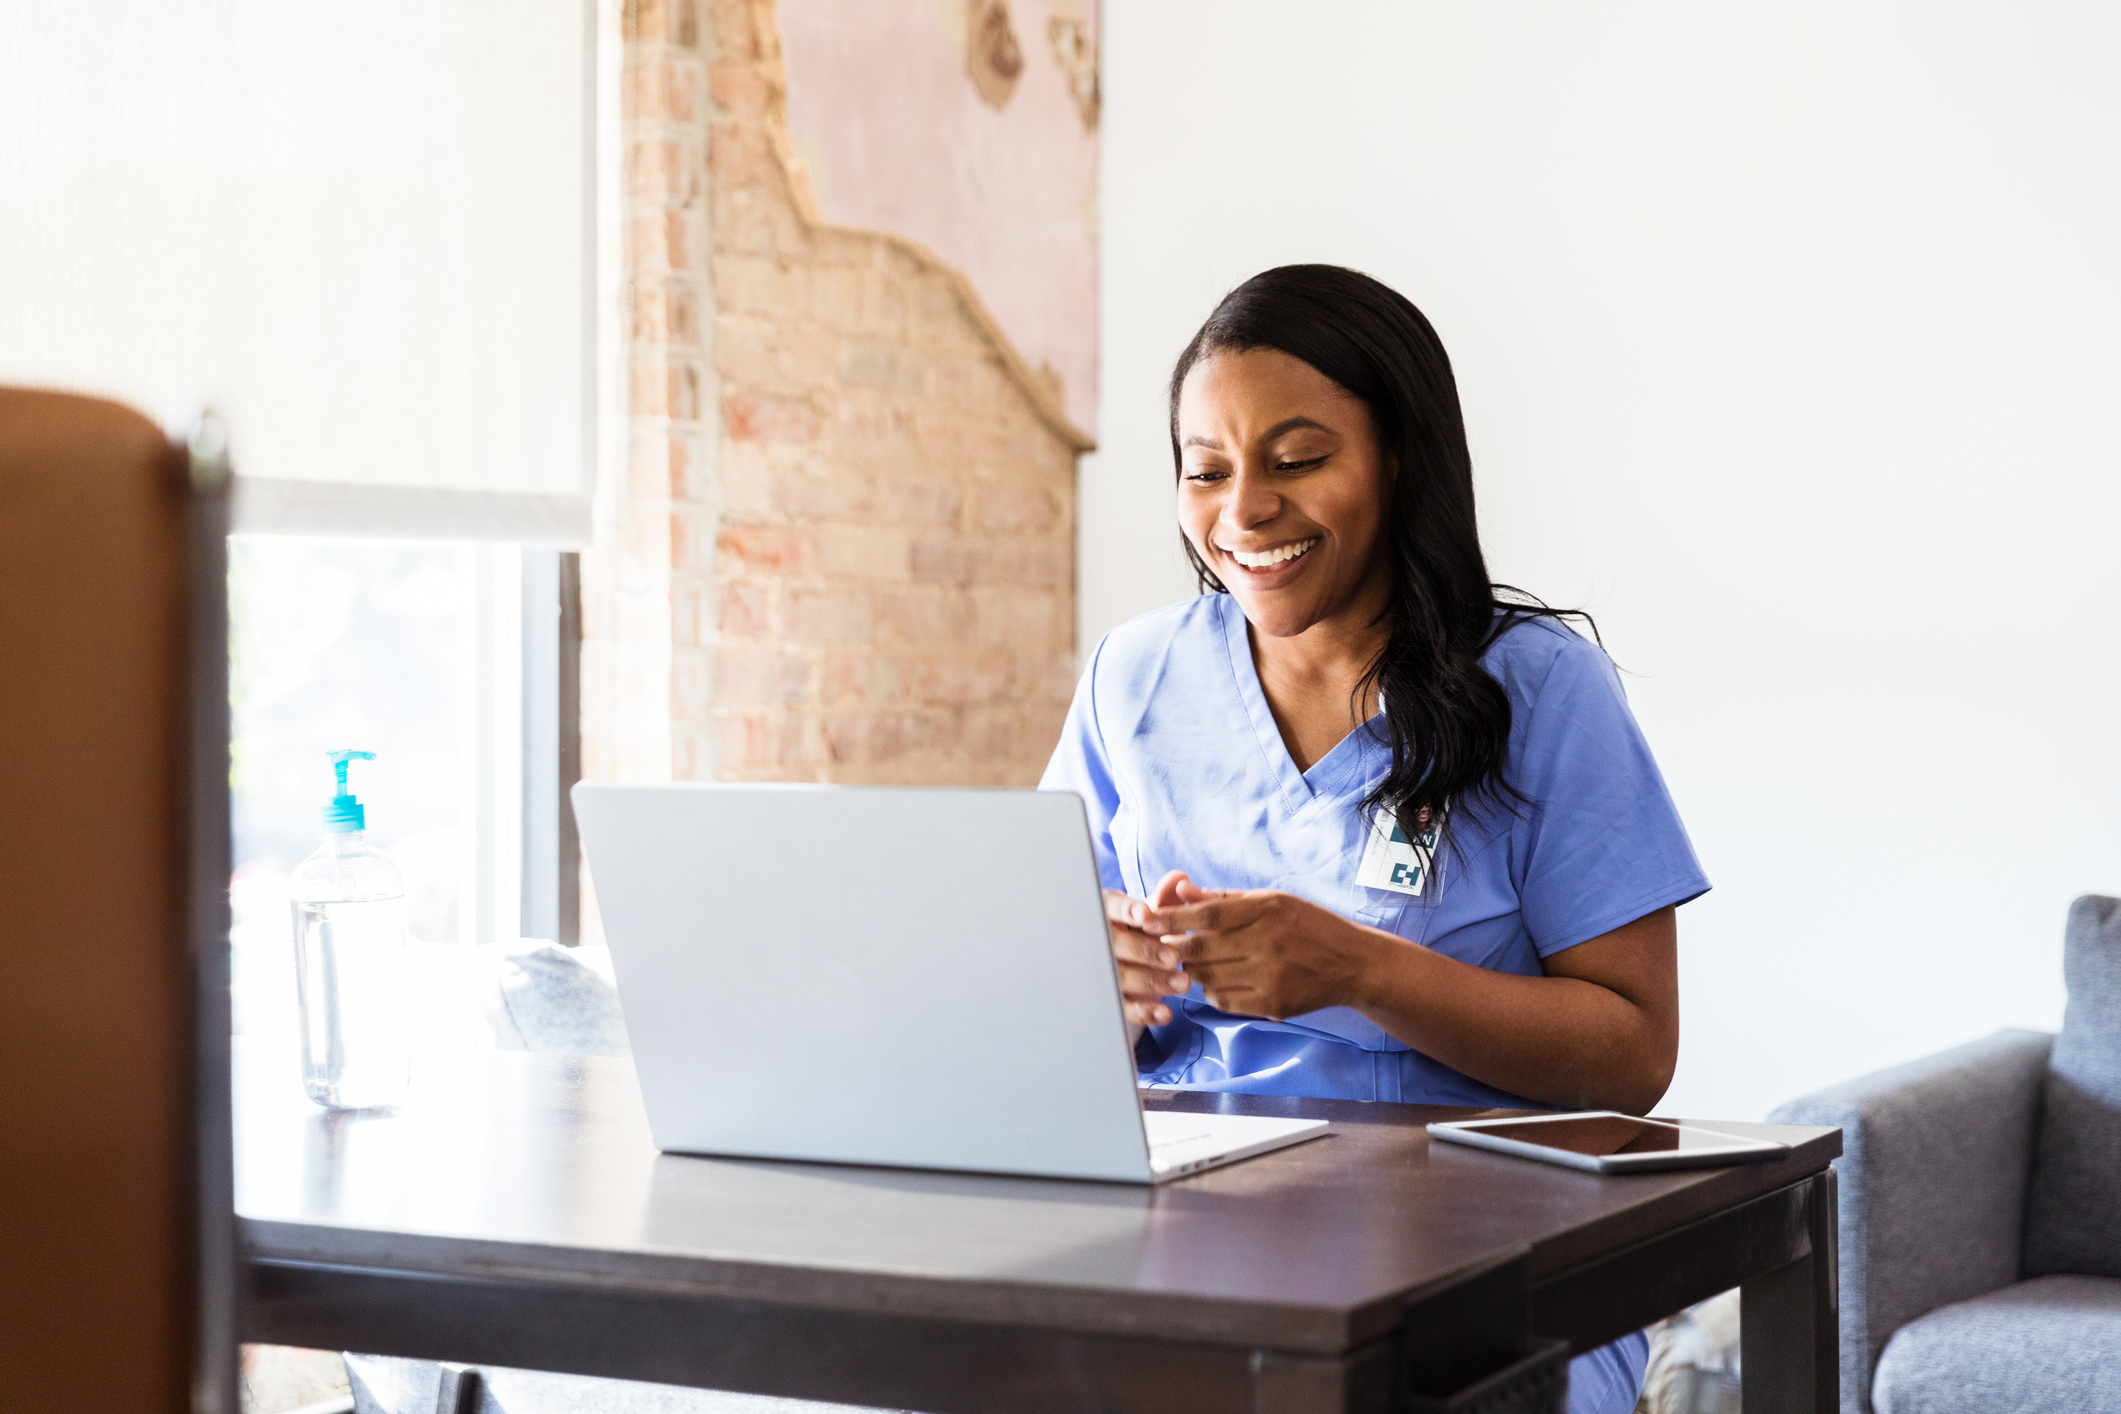 3 Things You Need To Advance Your Nursing Career